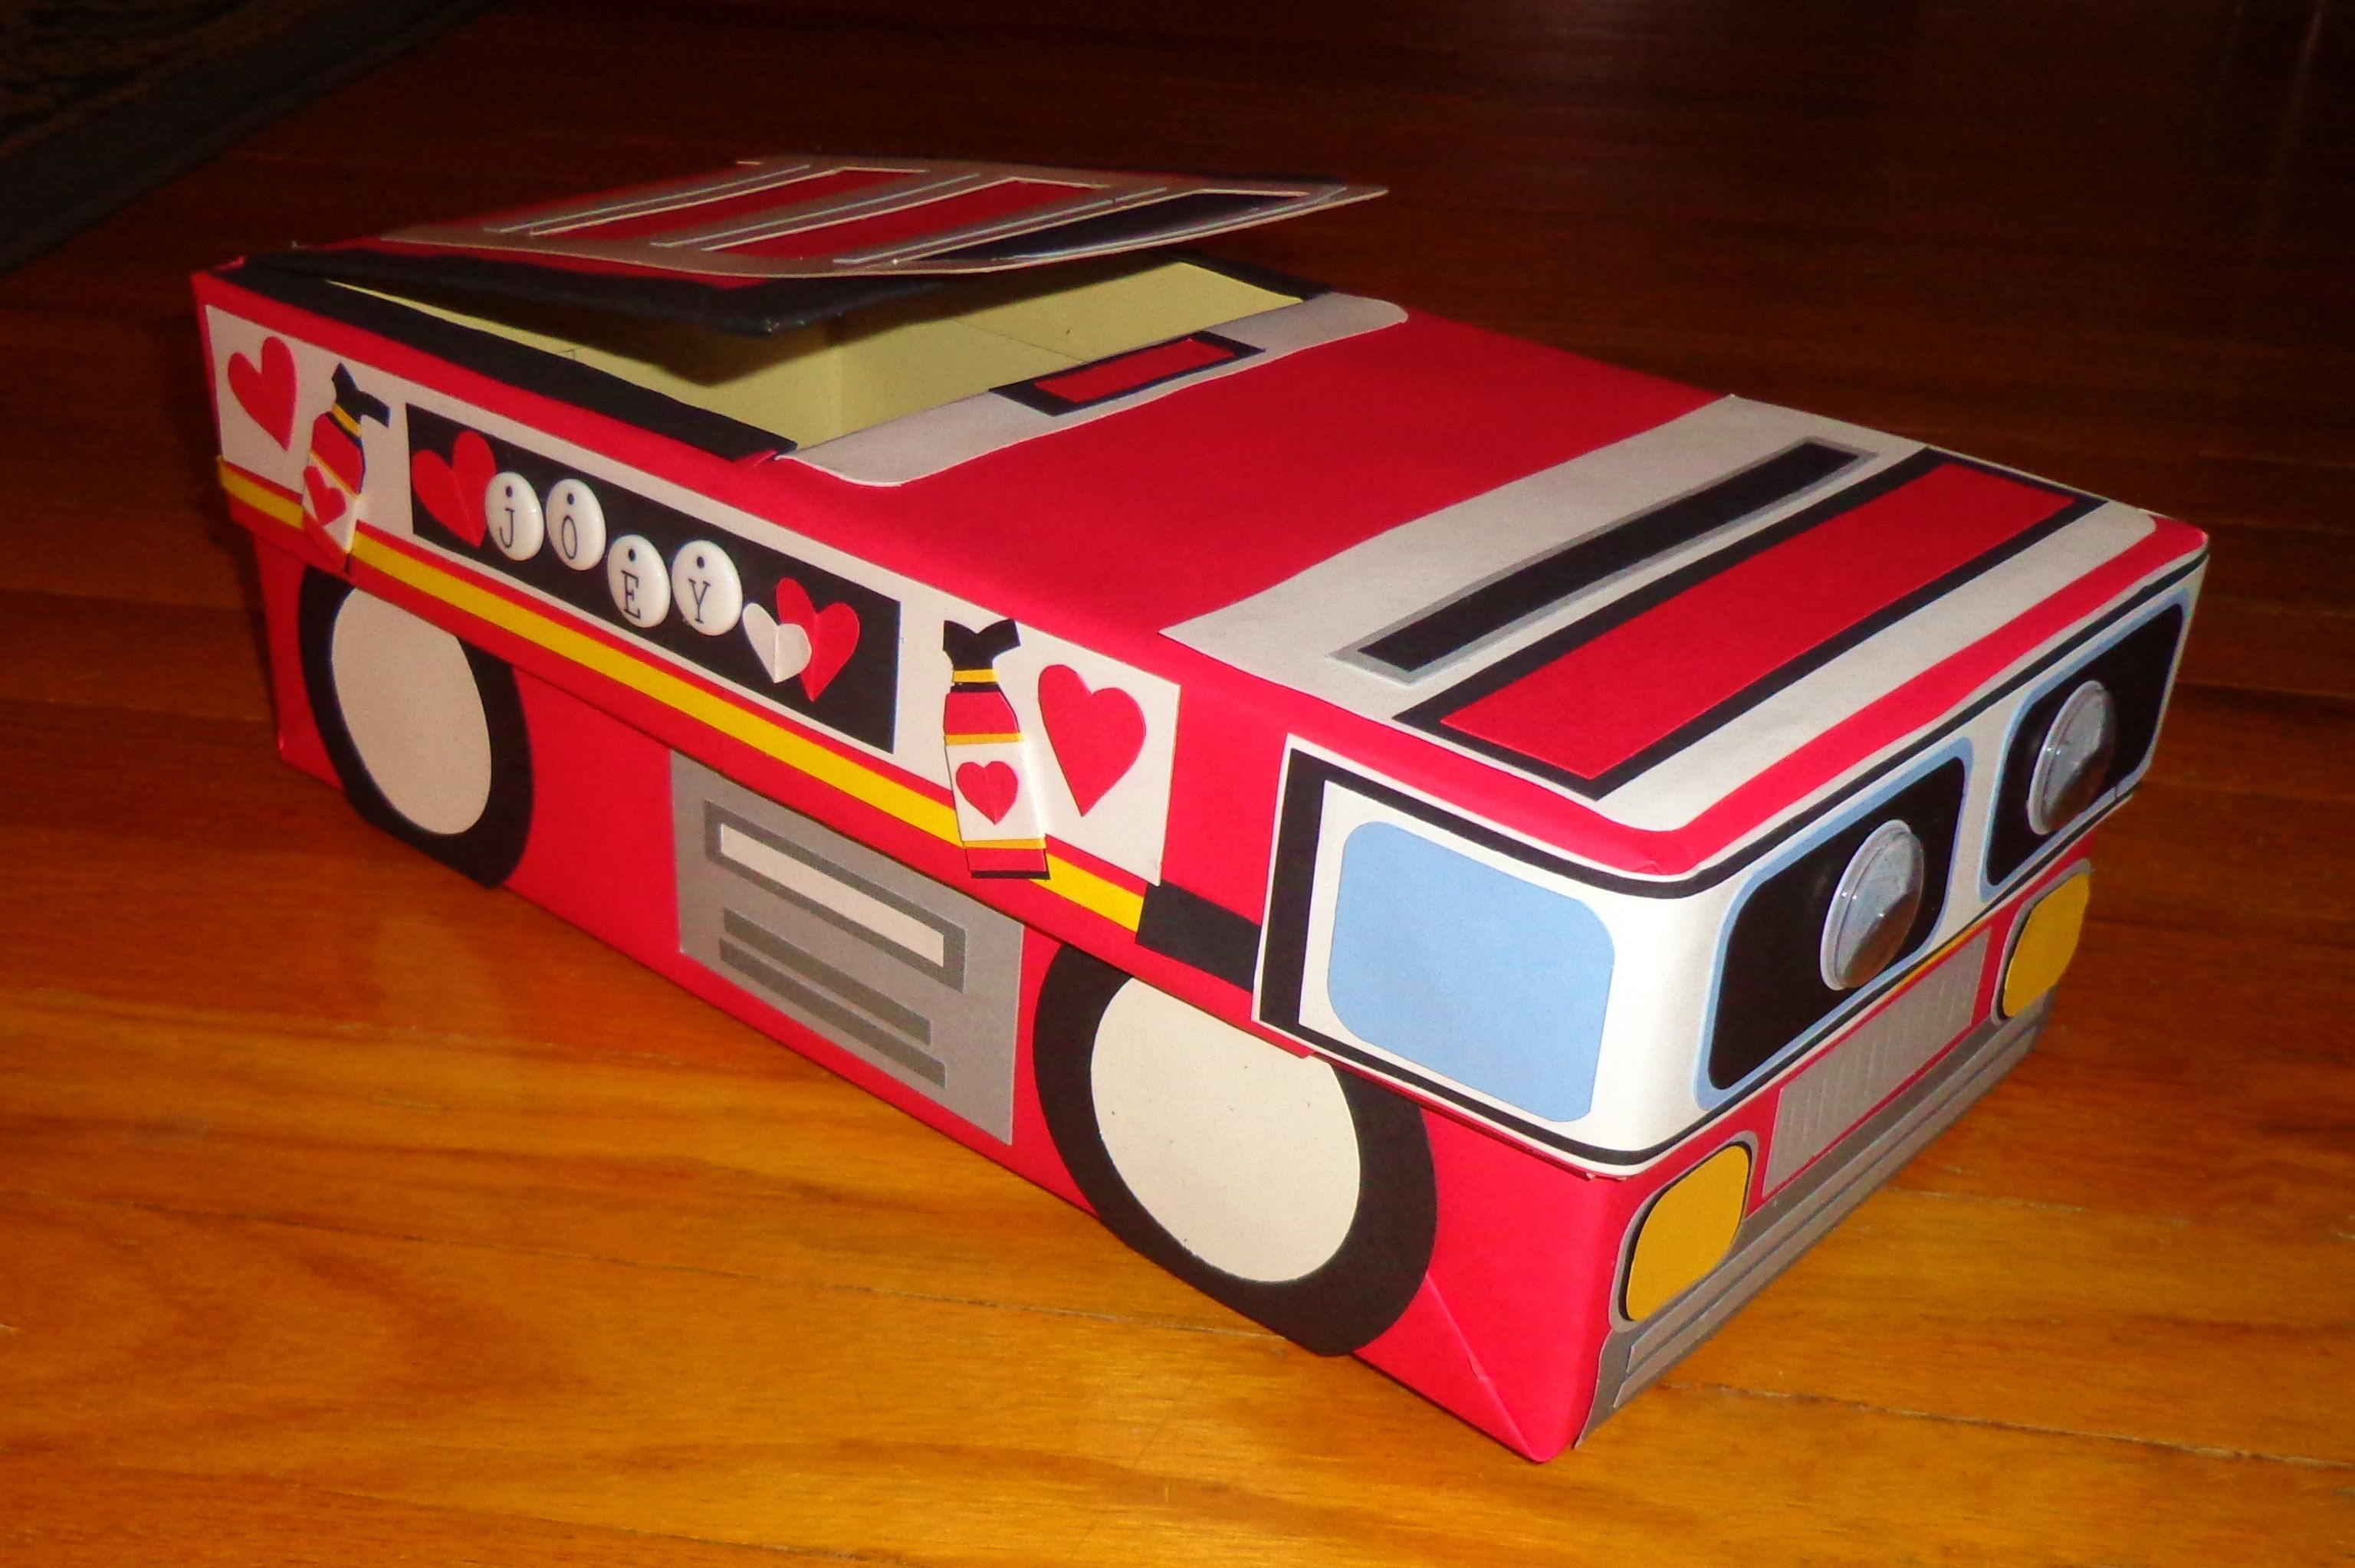 Shoe Box Decoration Ideas Fire Truck Themed Valentine's Day Card Box  Made With A Shoe Box